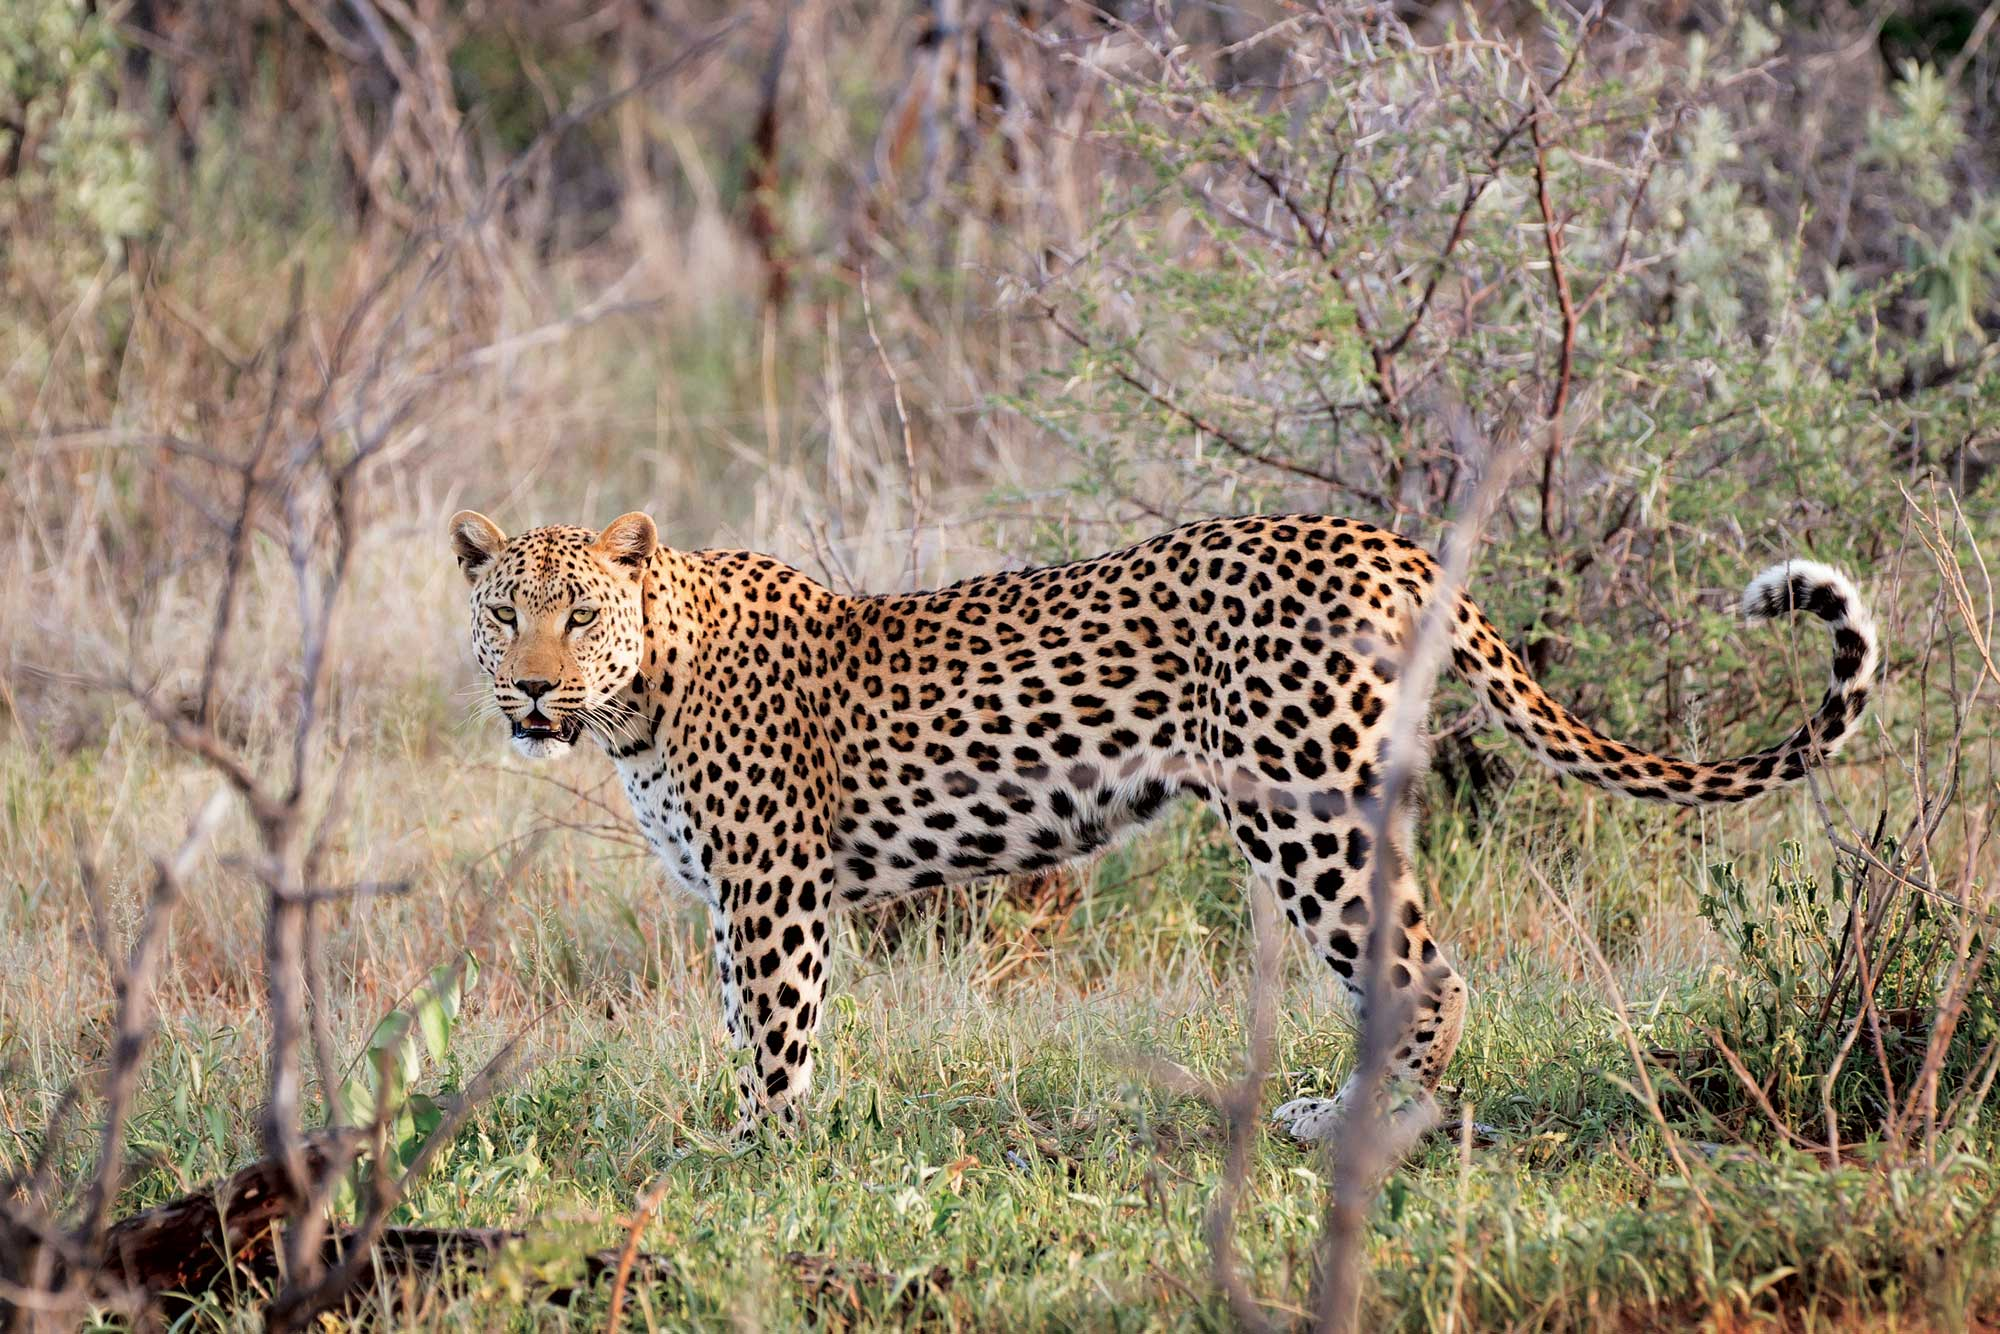 The-sultry-Lila-,-one-of-the-collared-wild-leopards-on-Okonjima-2